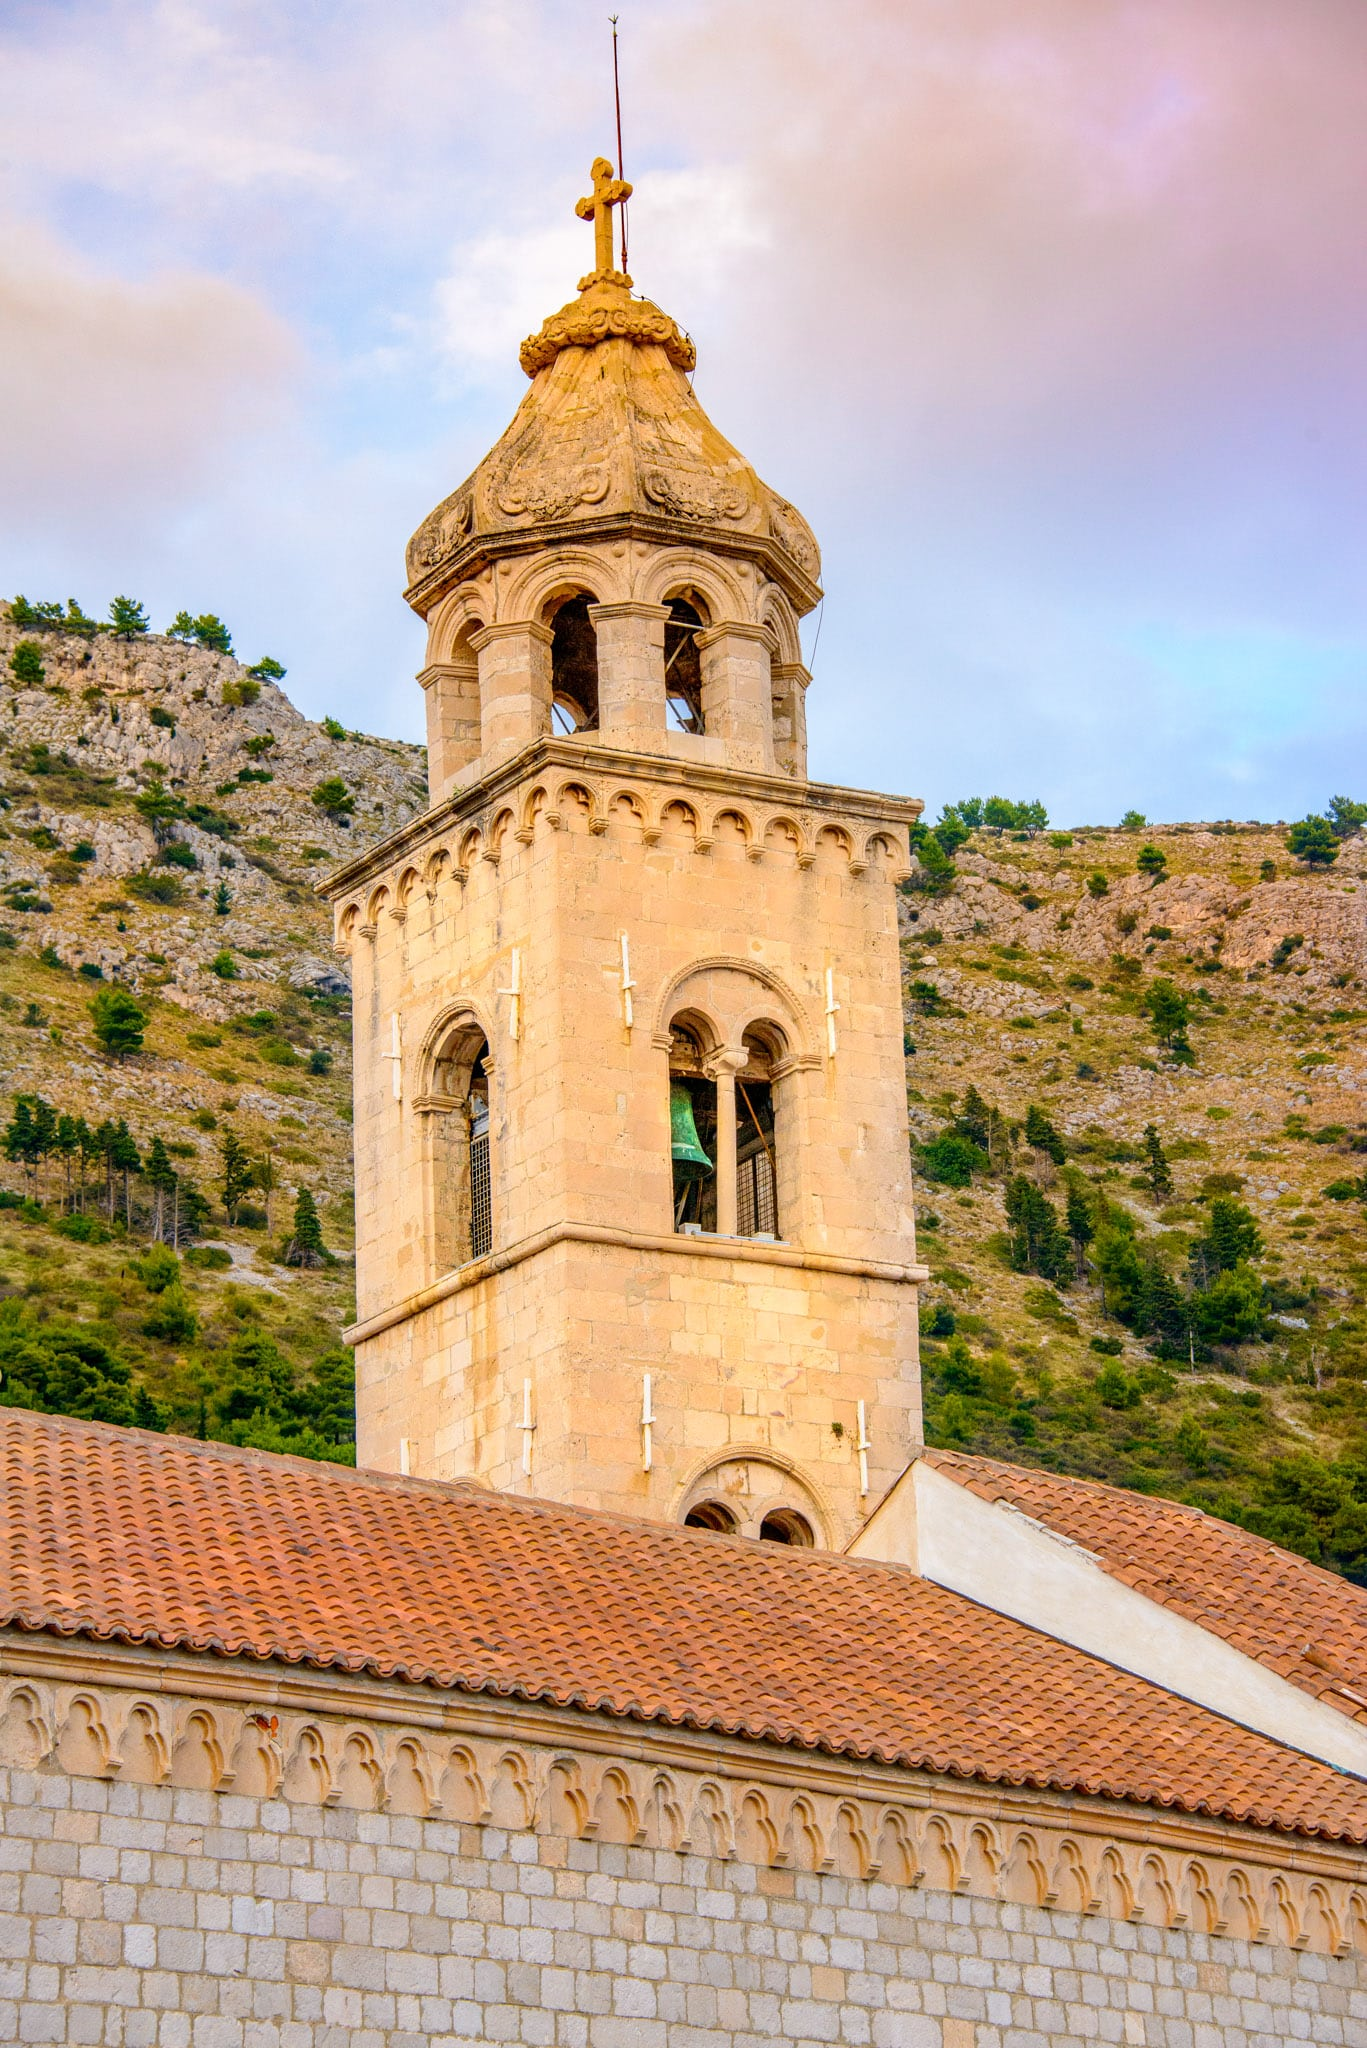 The bell tower of the Dominican Church and Monastery in Dubrovnik Old City in Croatia.